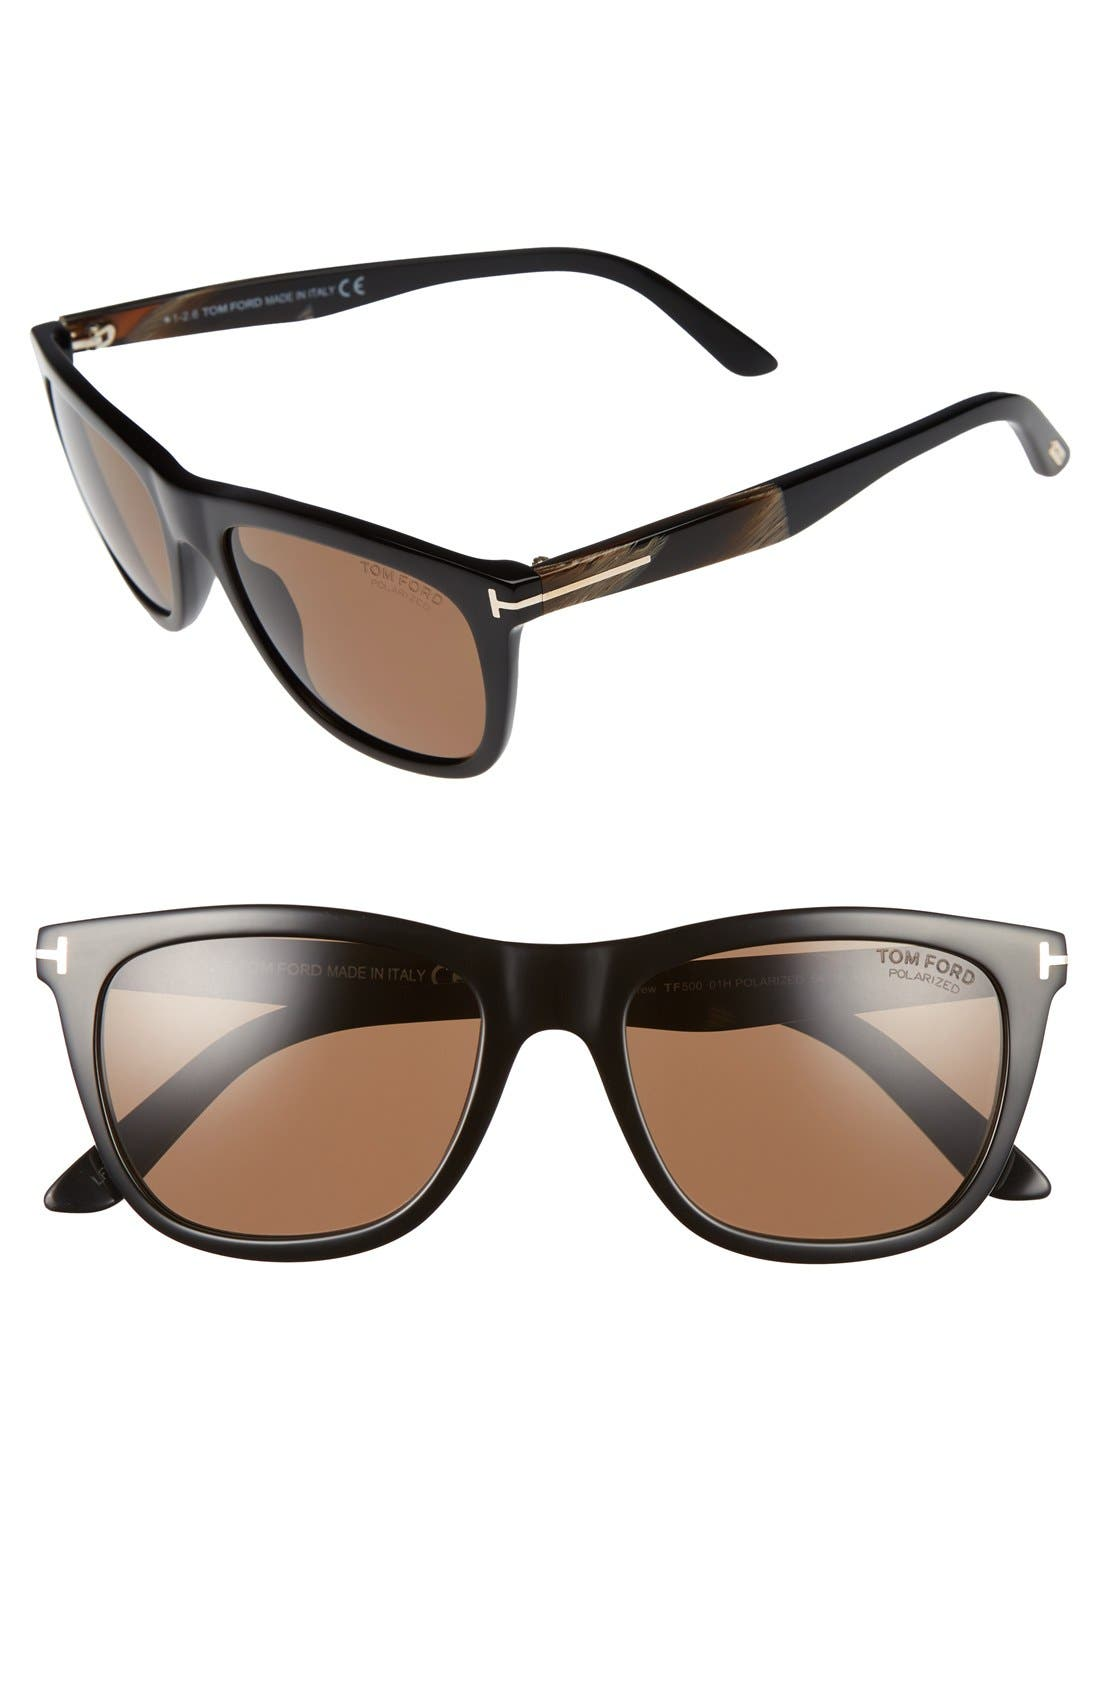 Andrew 54mm Sunglasses,                         Main,                         color, Black/ Brown Horn/ Brown Polar